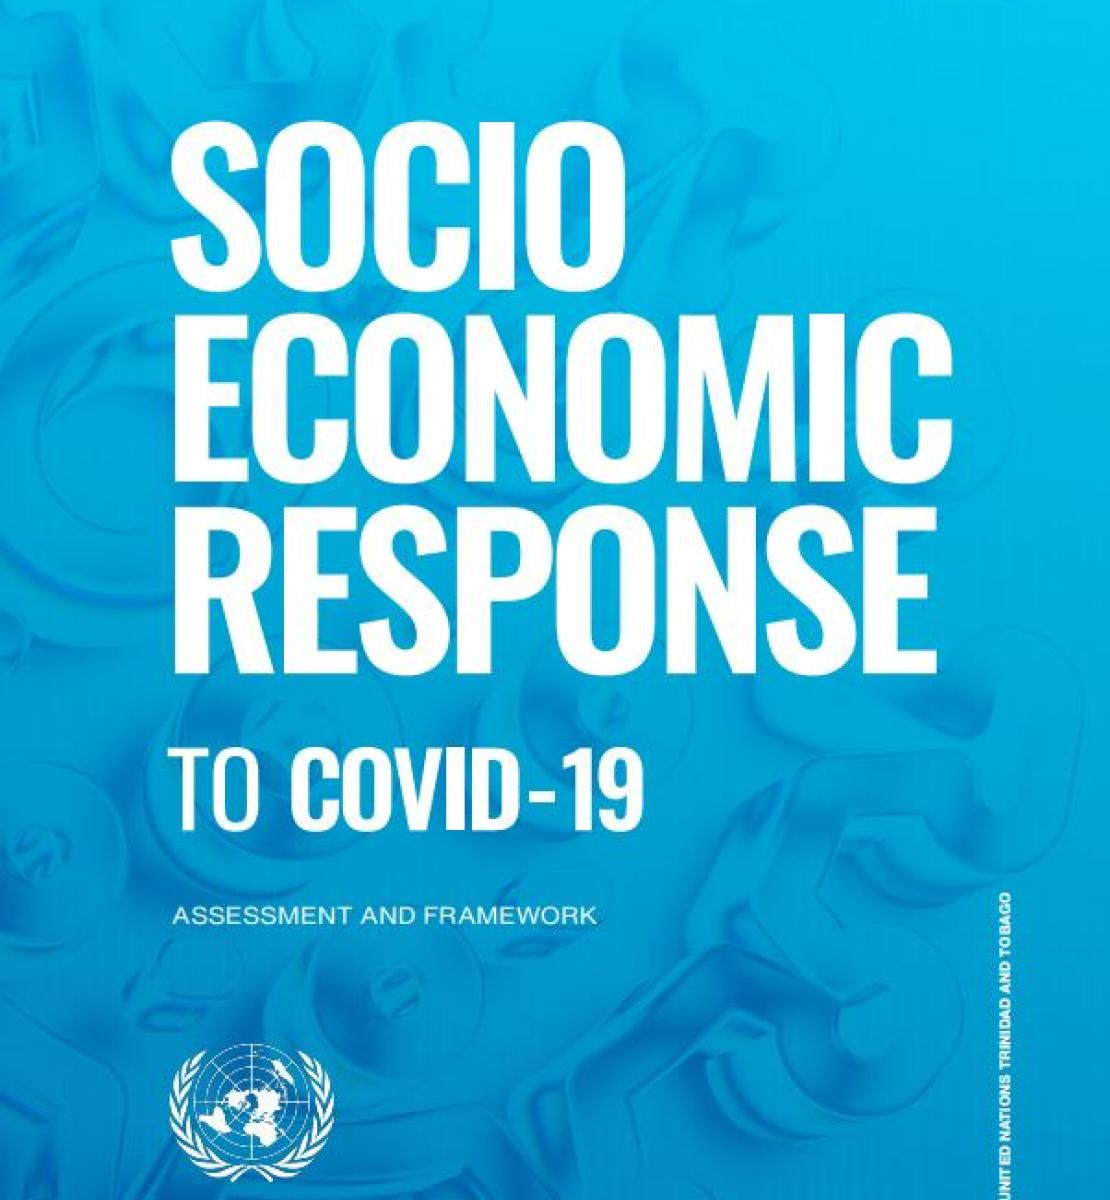 """Cover shows the title, """"Socio Economic Response to COVID-19 - Assessment and Framework for Trinidad and Tobago"""", over blue background"""